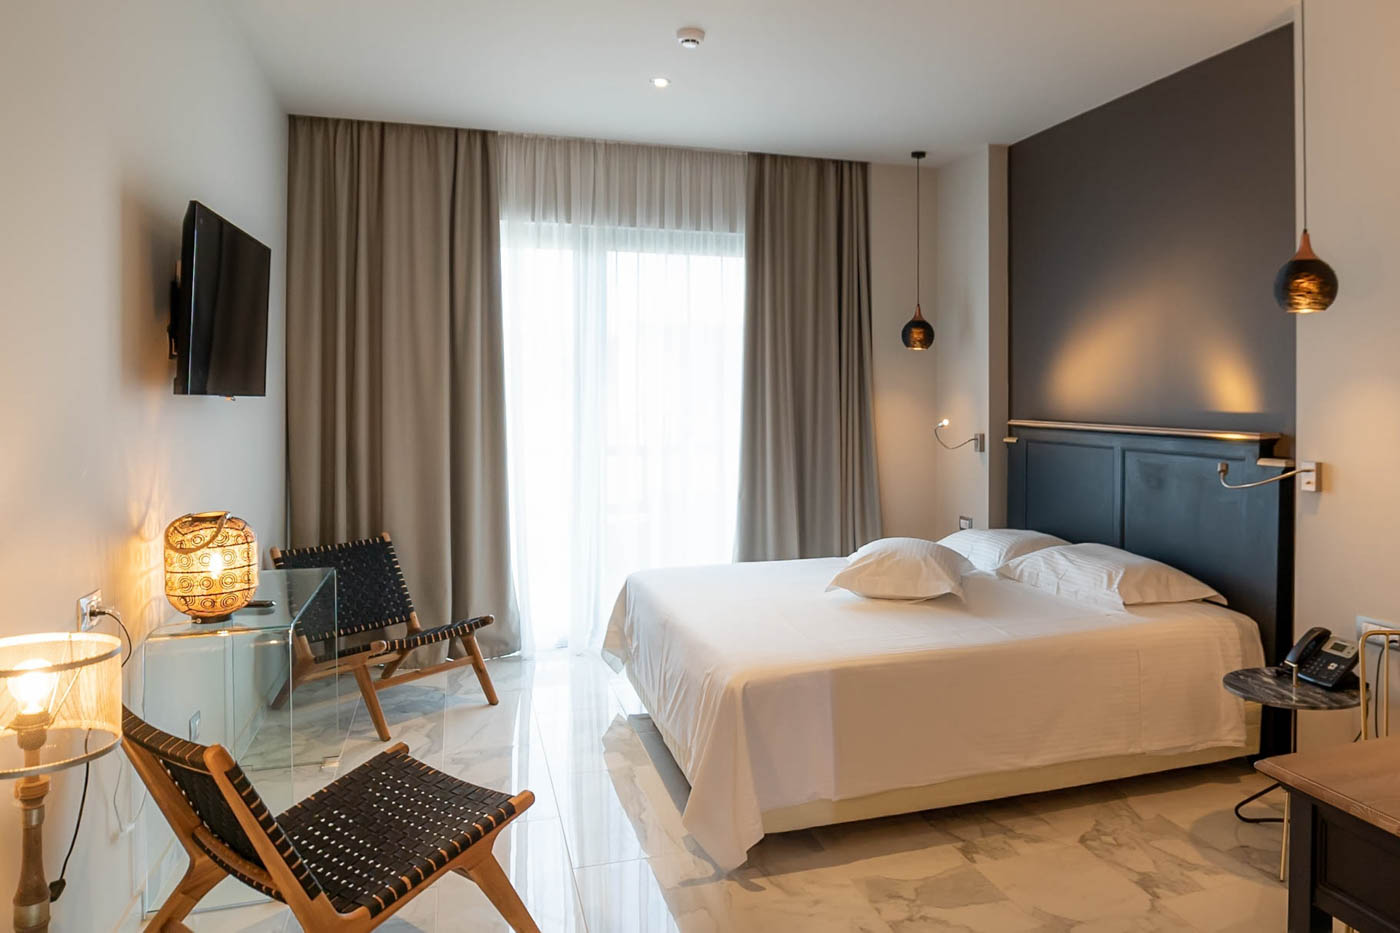 Elysian luxury hotel and spa Kalamata deluxe suite bedroom with a balcony view